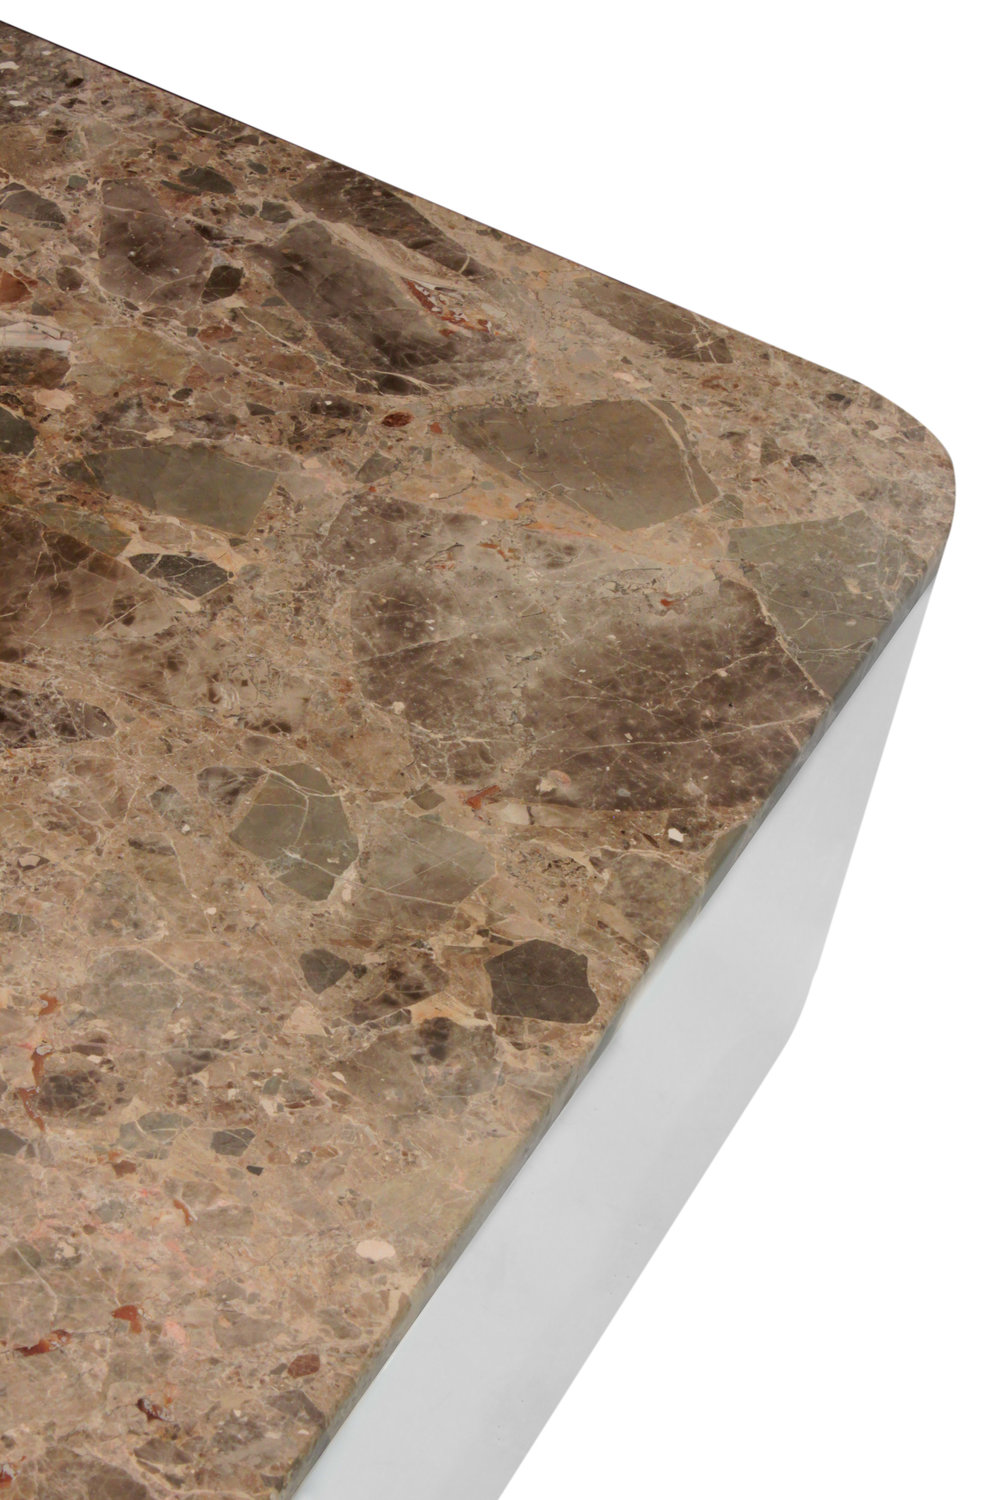 Brueton 85 polished steel+marble coffeetable75 detail3 hires.jpg